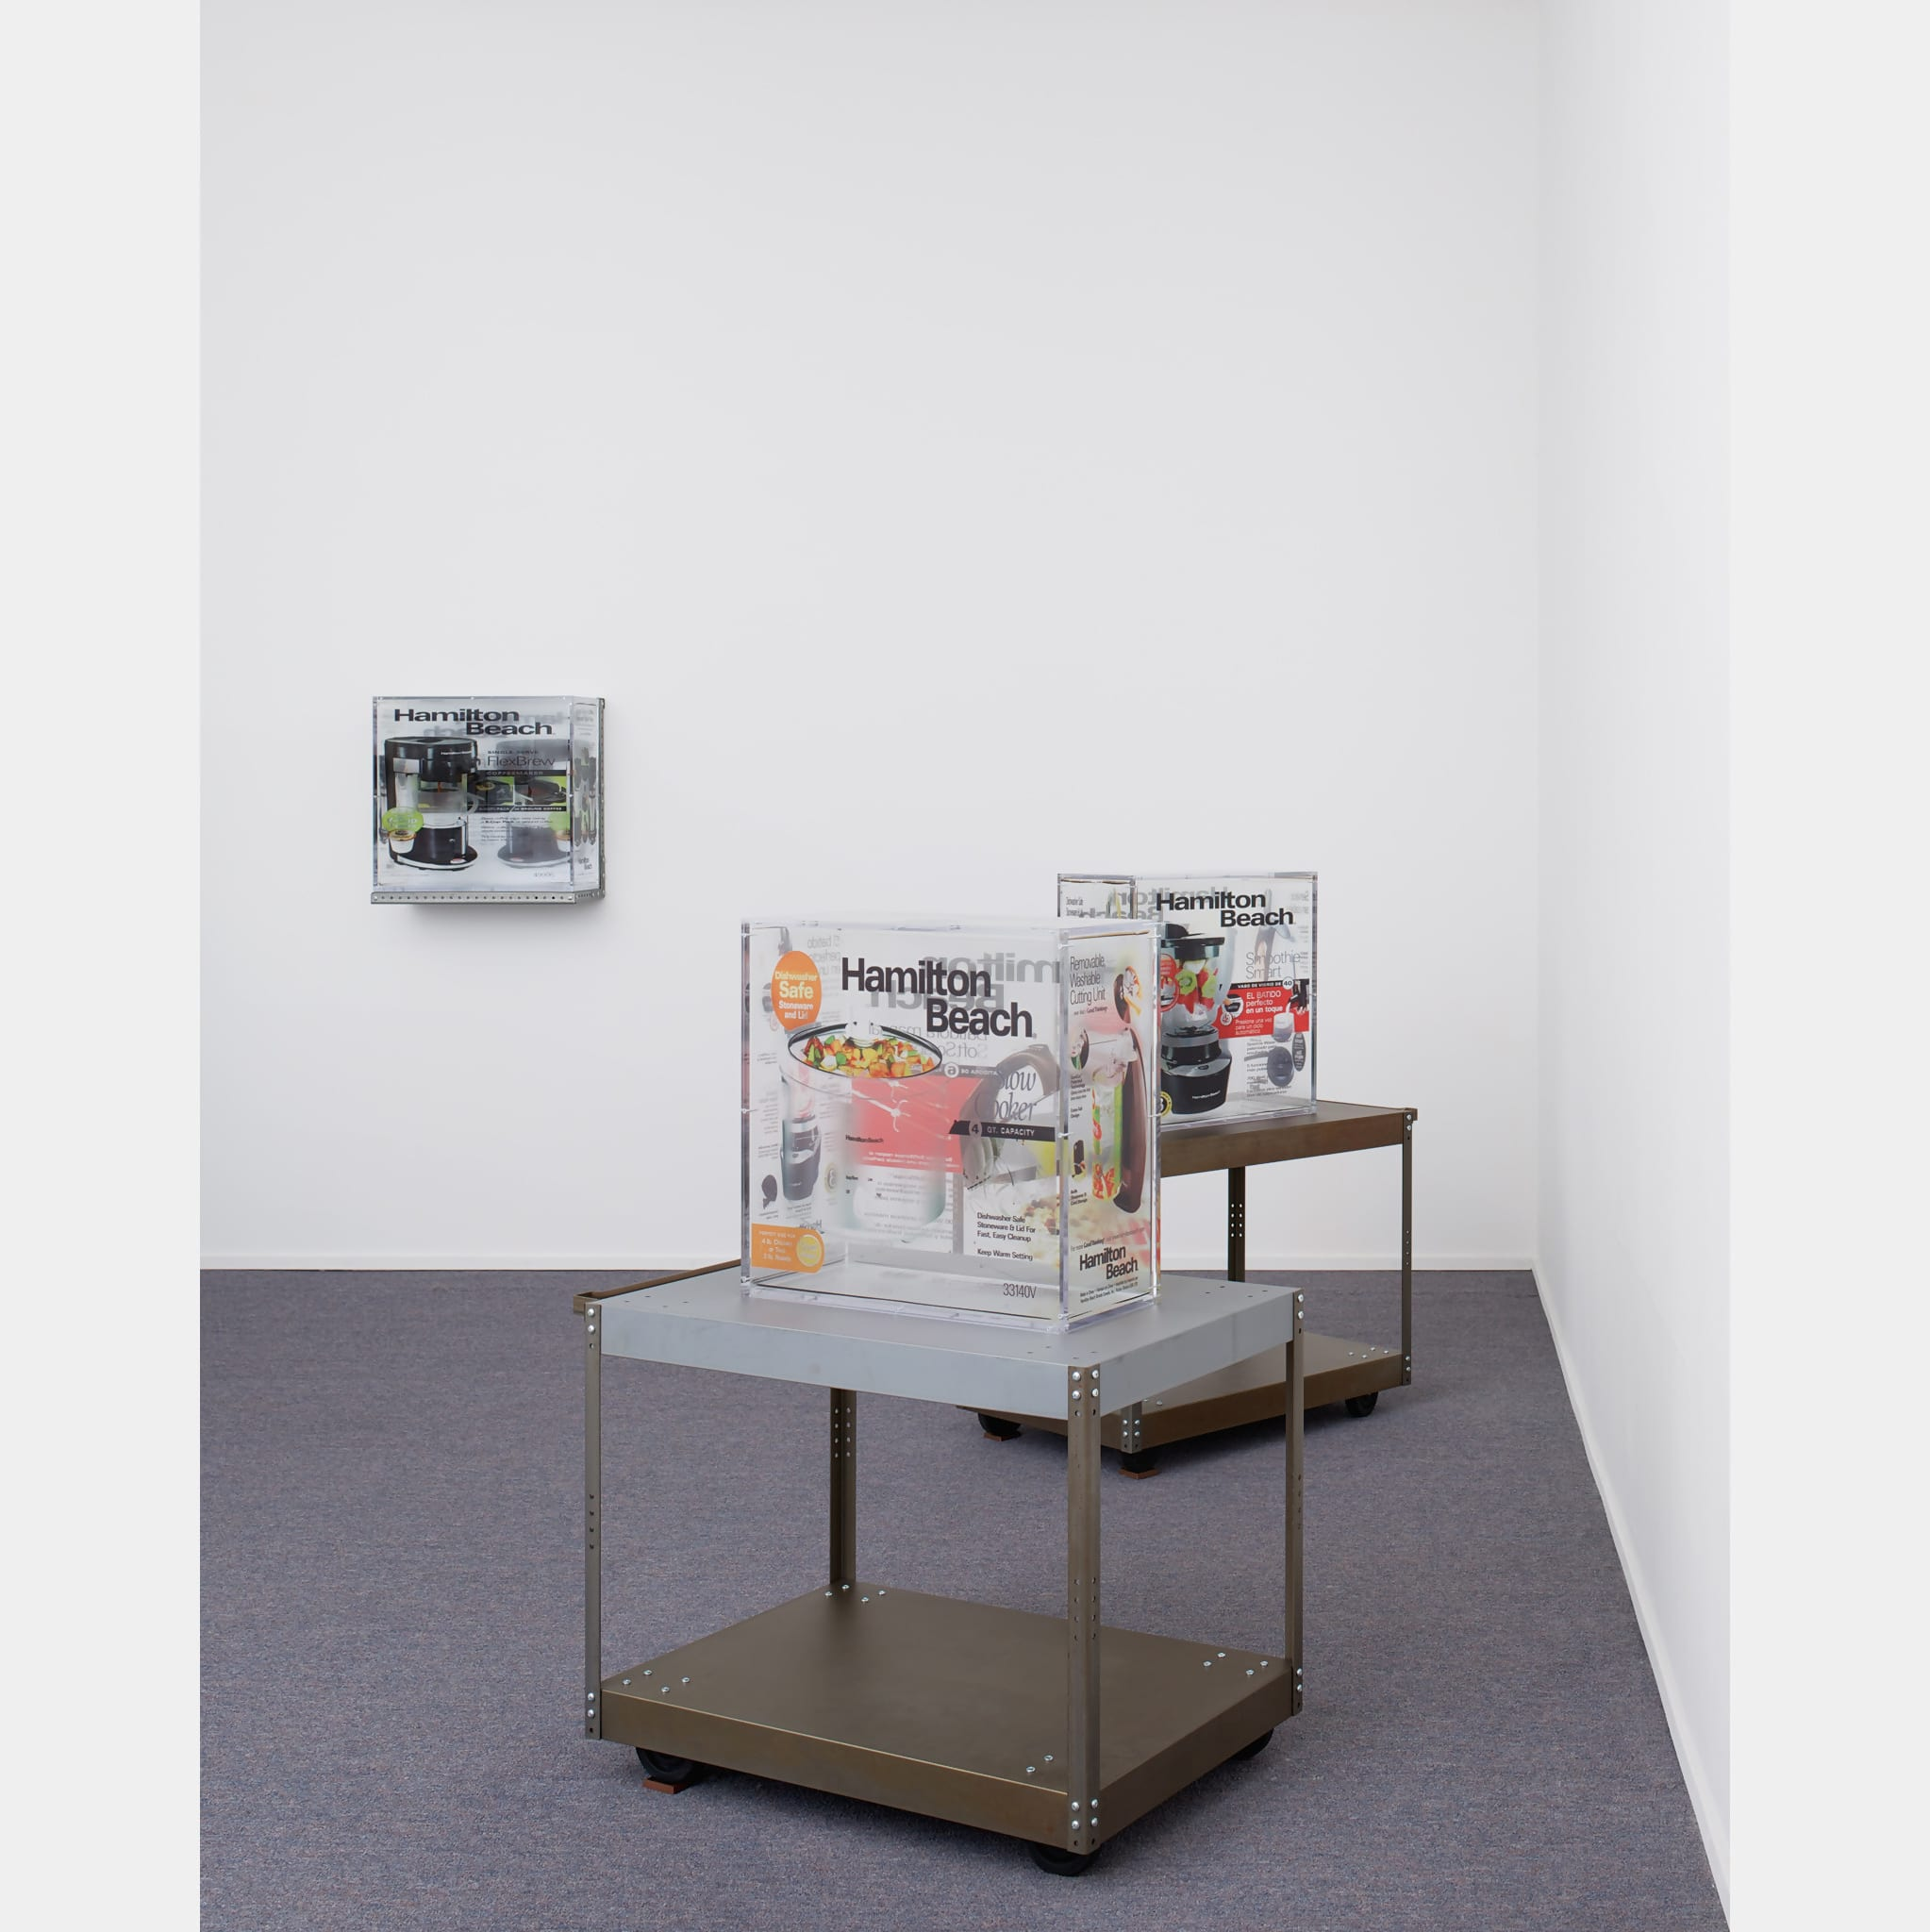 Installation view, 'Taster's Choice', MoMA PS1 by Zak Kitnick